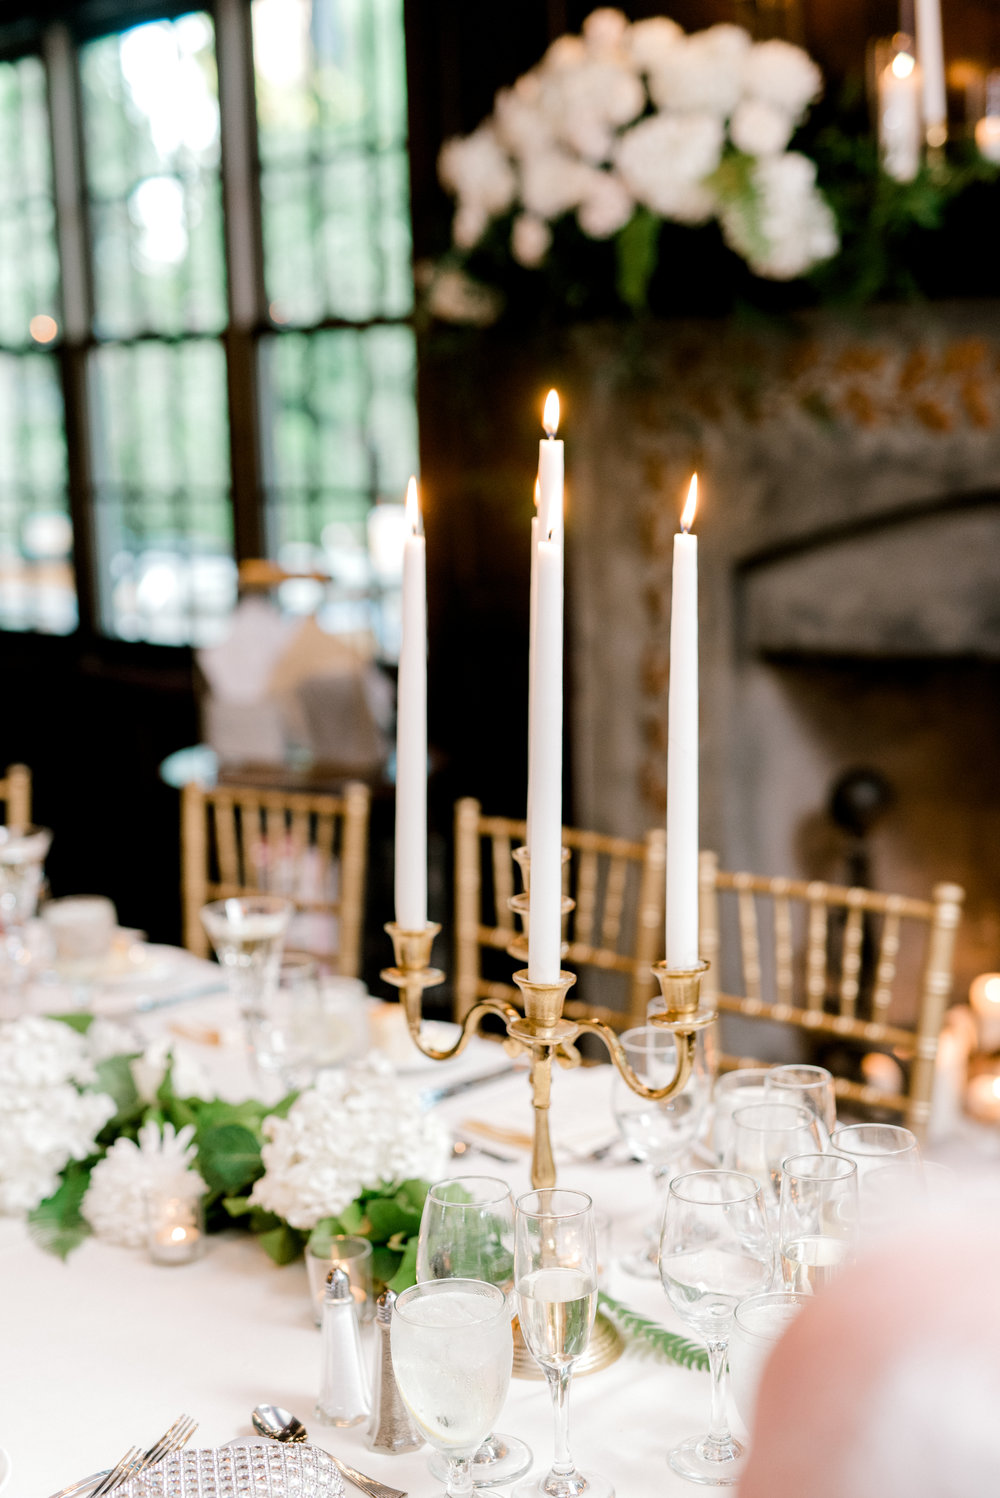 Gold candelabras with white taper candles add a touch of opulence and elegance to this bright and modern summer wedding at Hotel du Village.